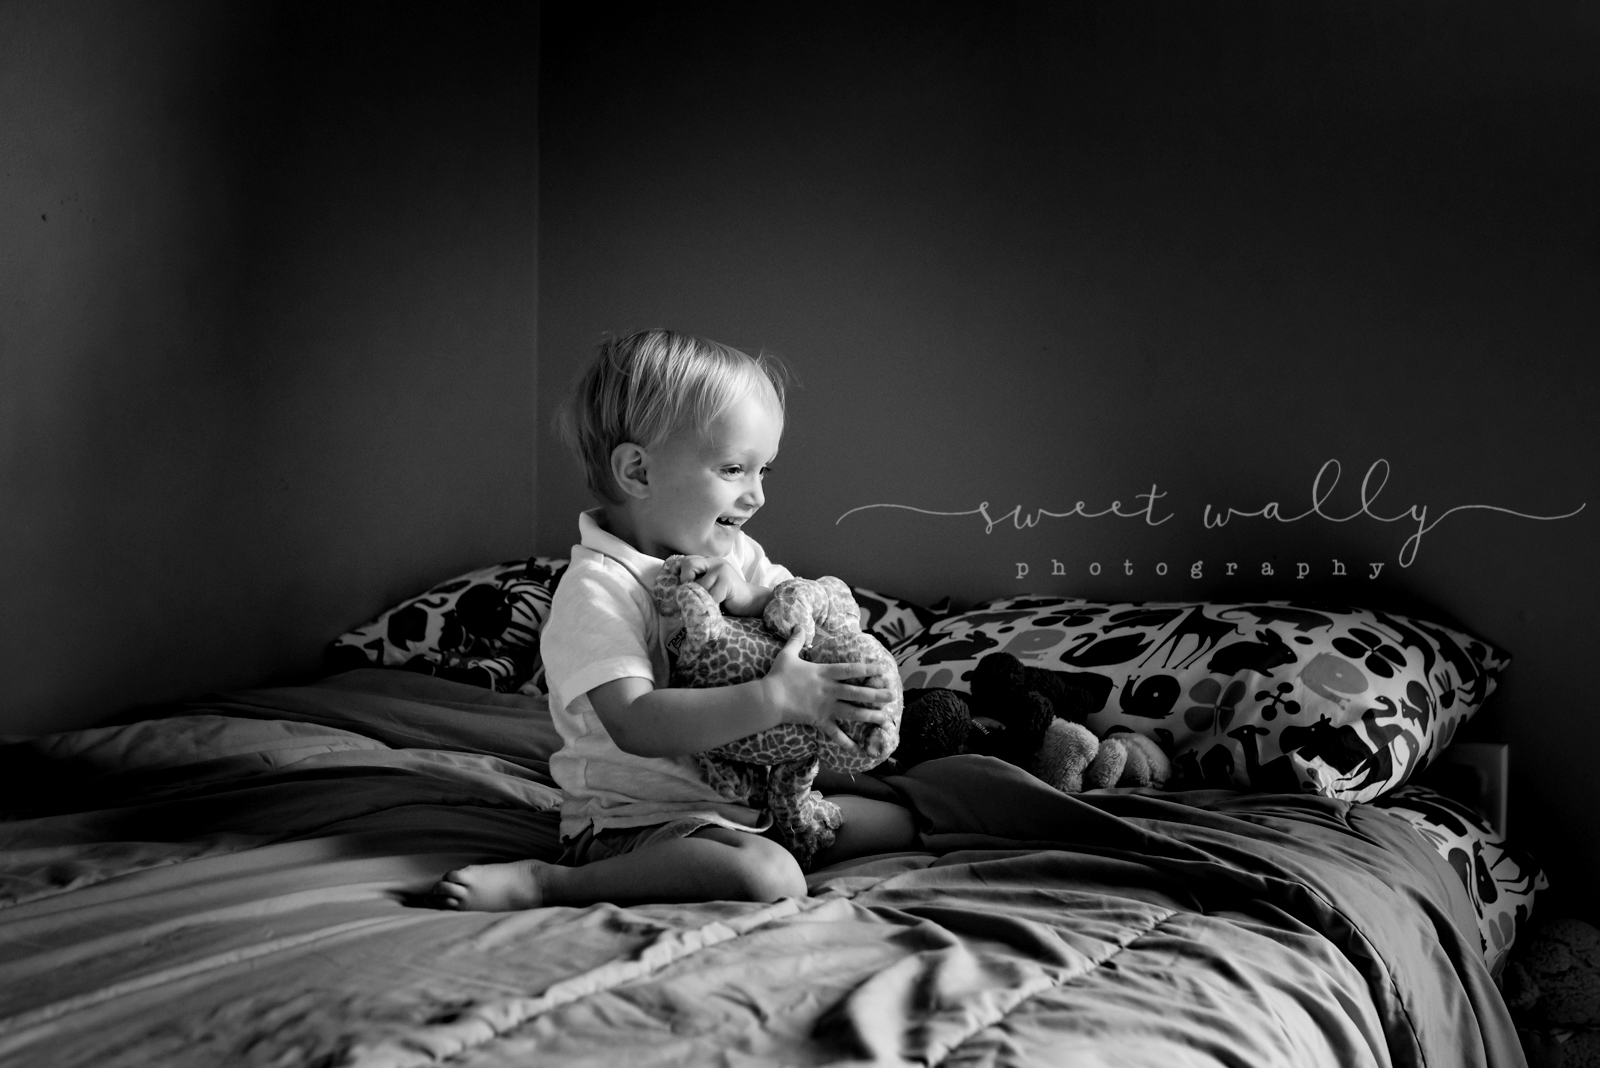 Big brother in his element | Lifestyle newborn family photo session by Sweet Wally Photography